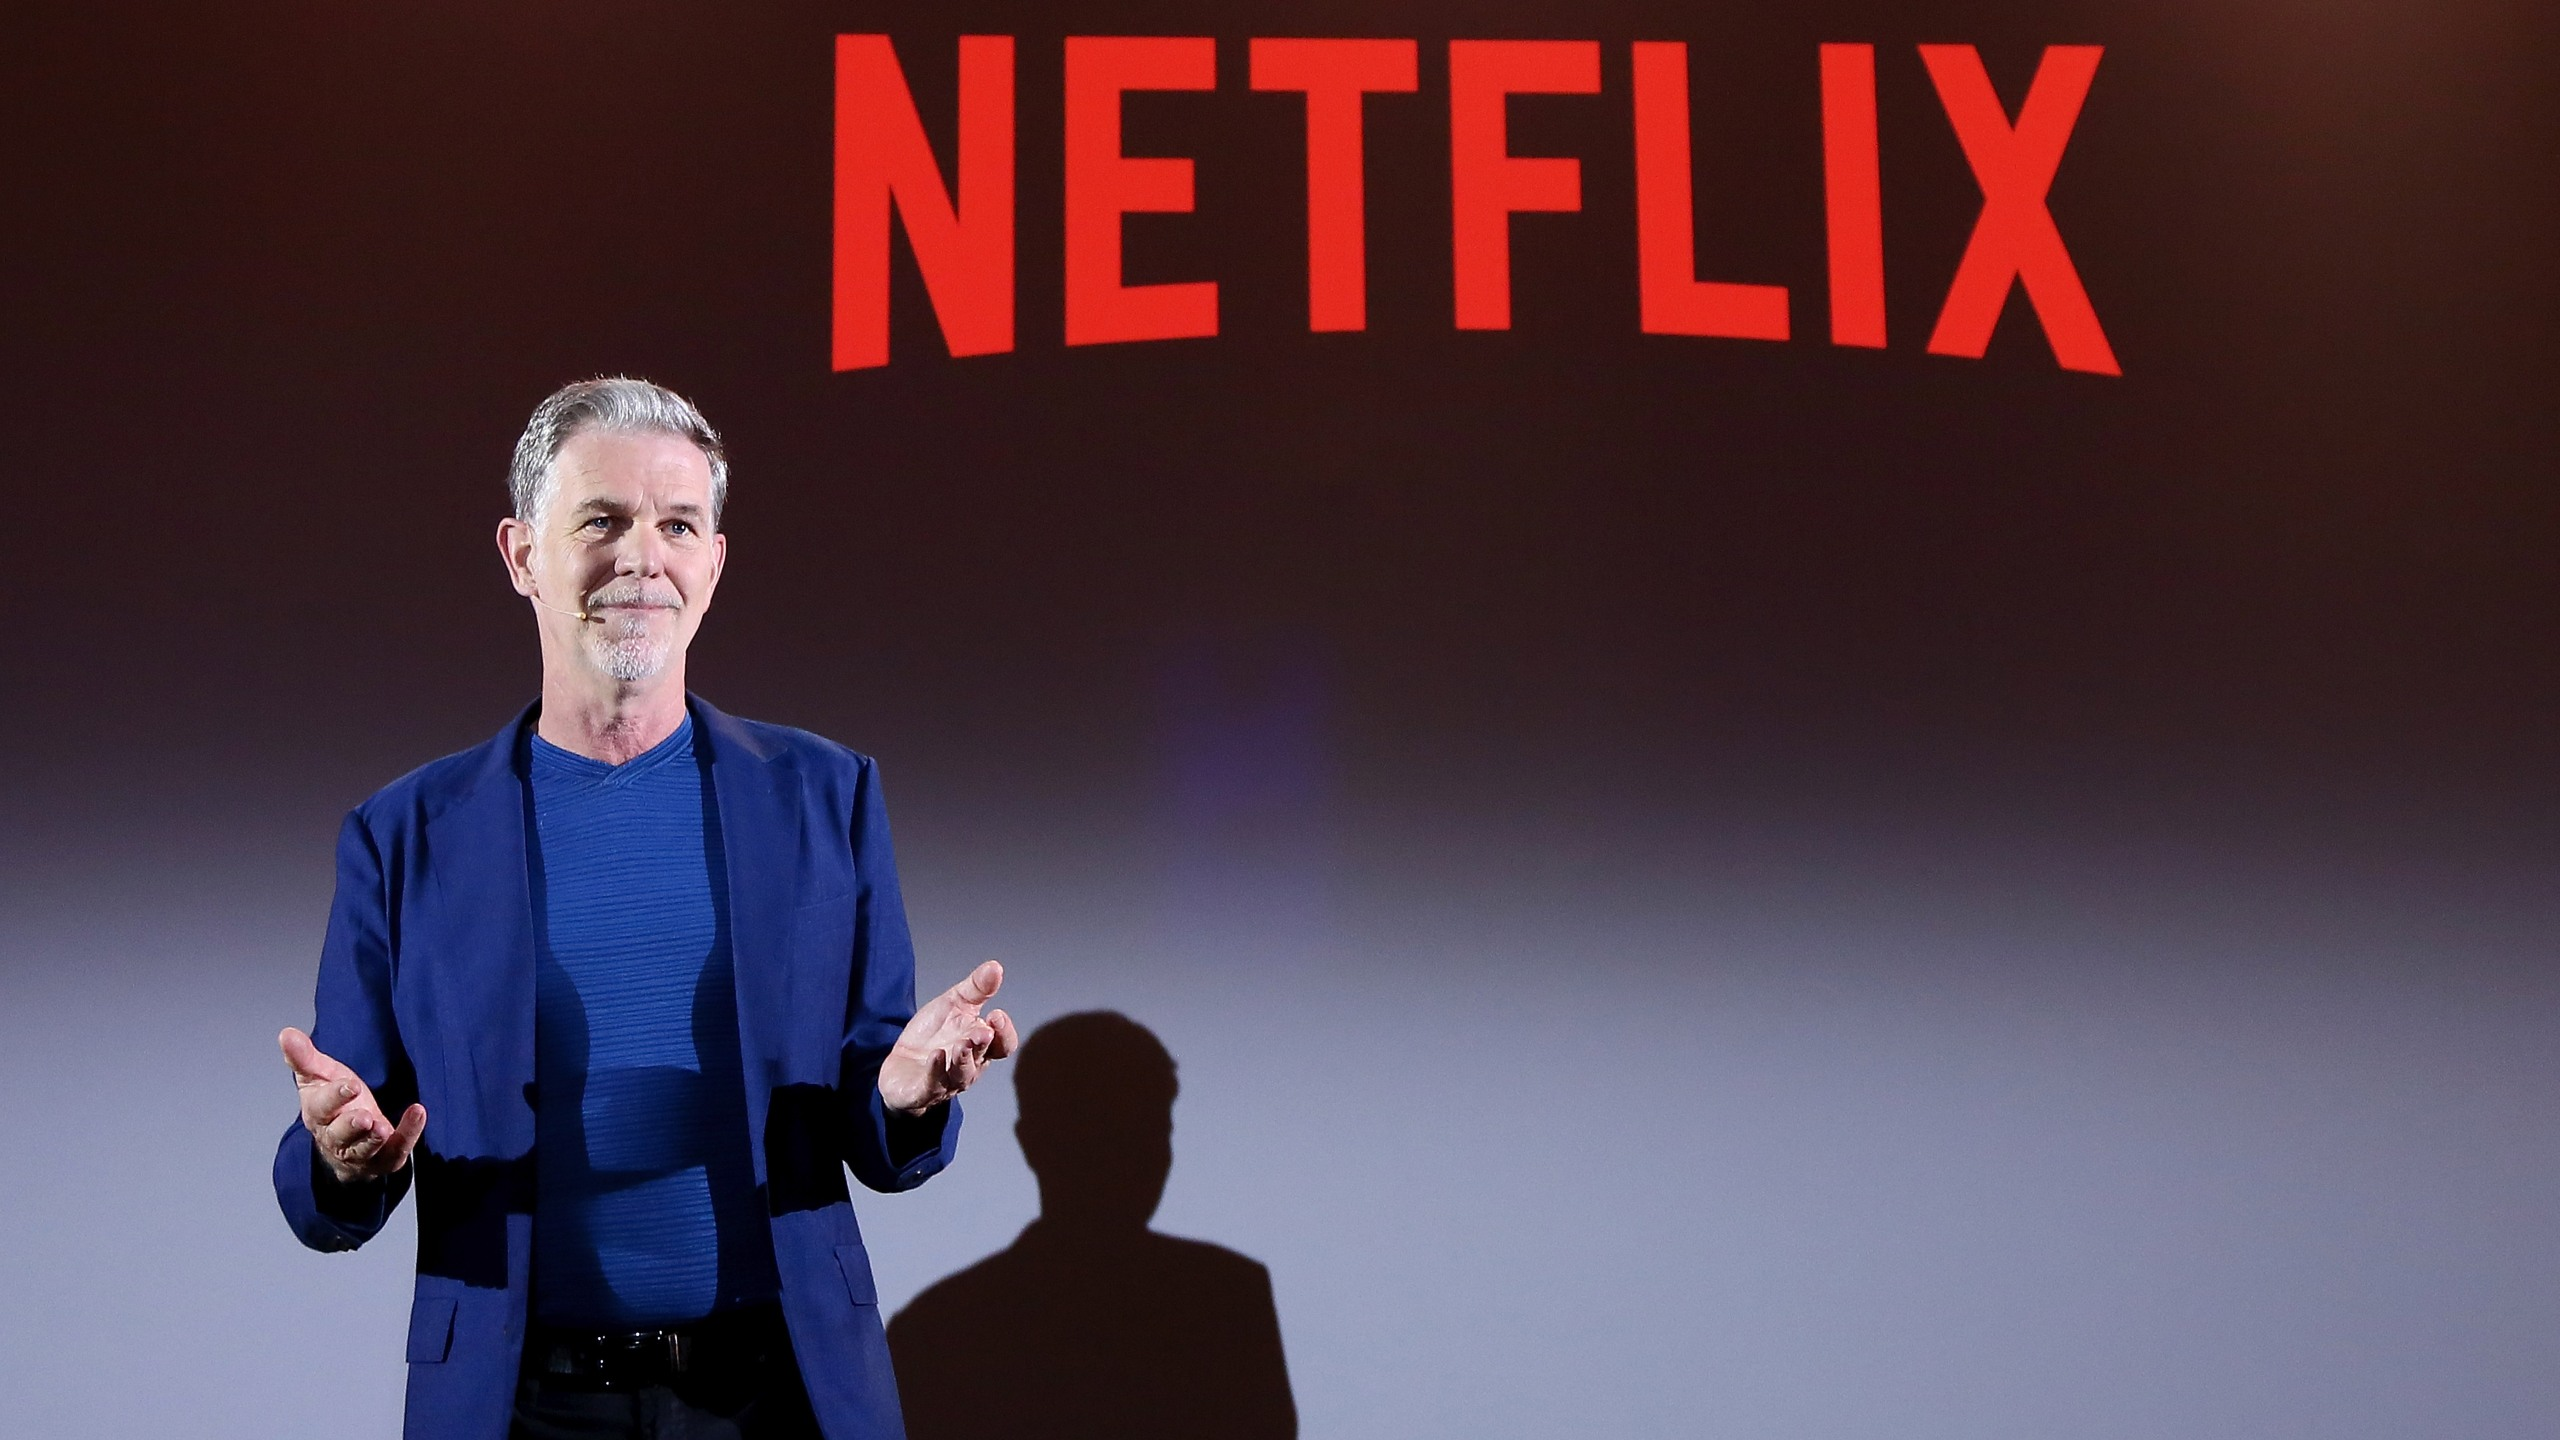 Reed Hastings, CEO of Netflix, is seen at a panel presentation in April 2018. (Credit: Ernesto S. Ruscio/Getty Images for Netflix)